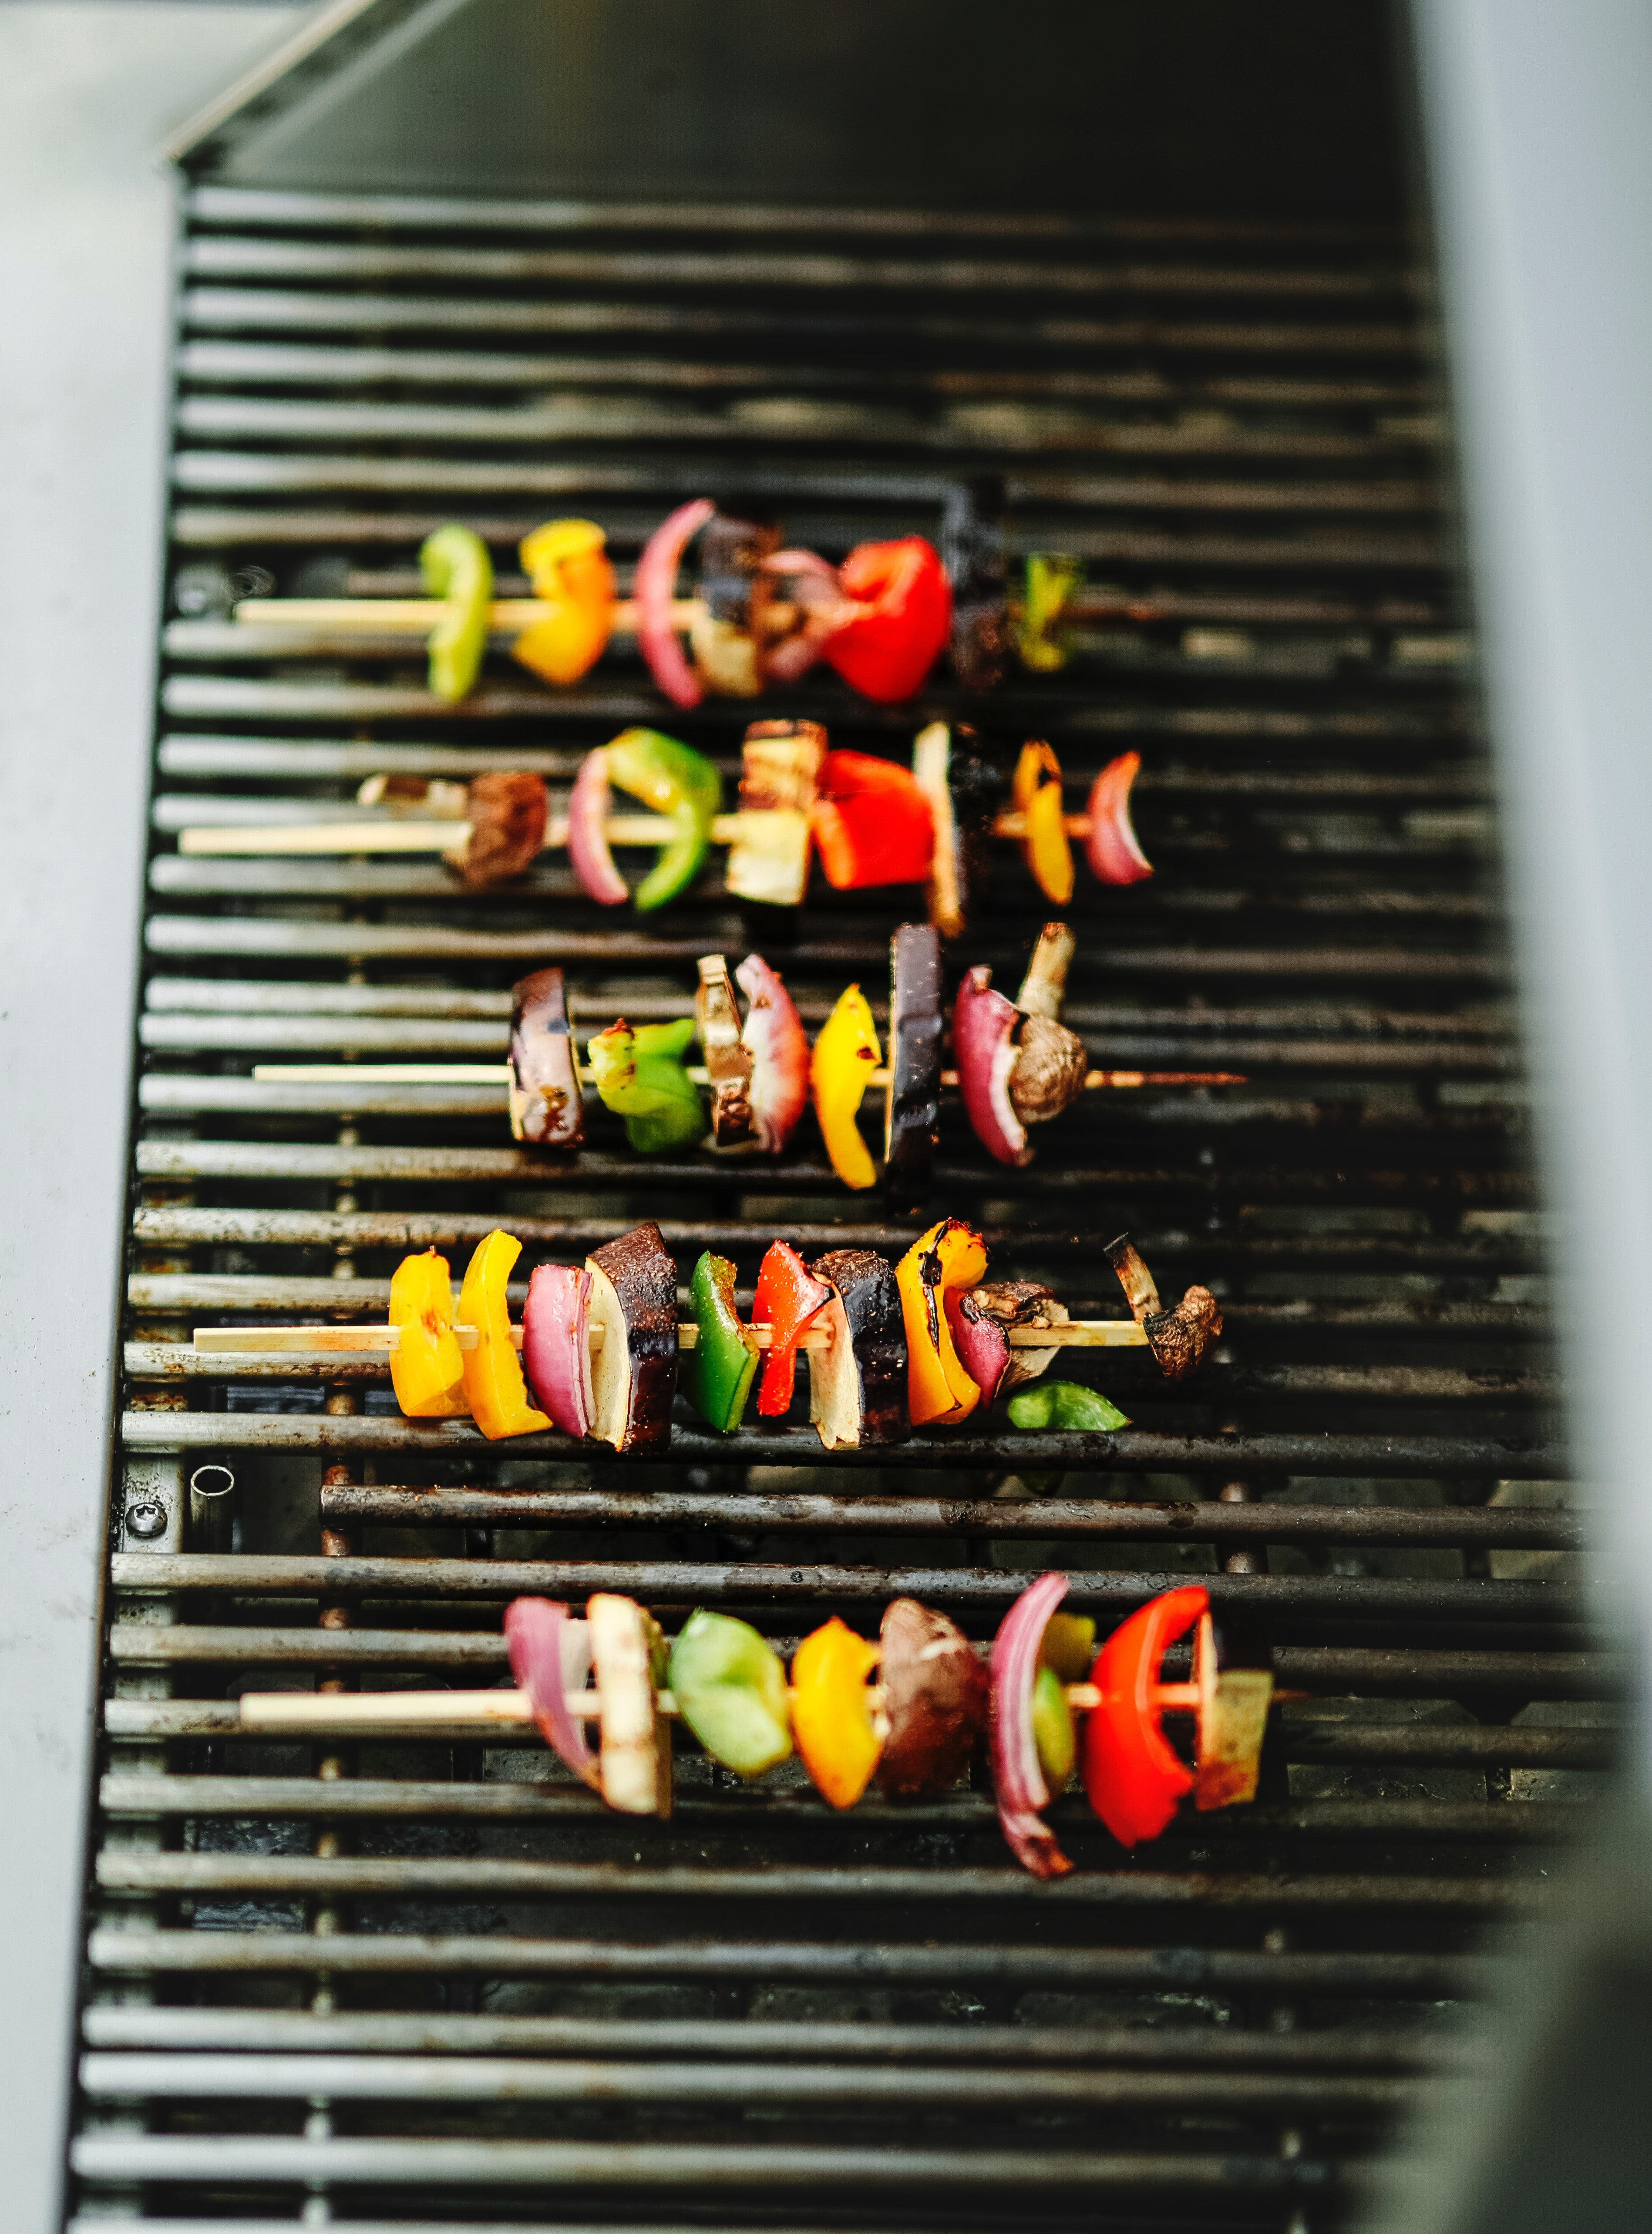 Summer Grilling Safety Tips To Reduce Cancer Risk